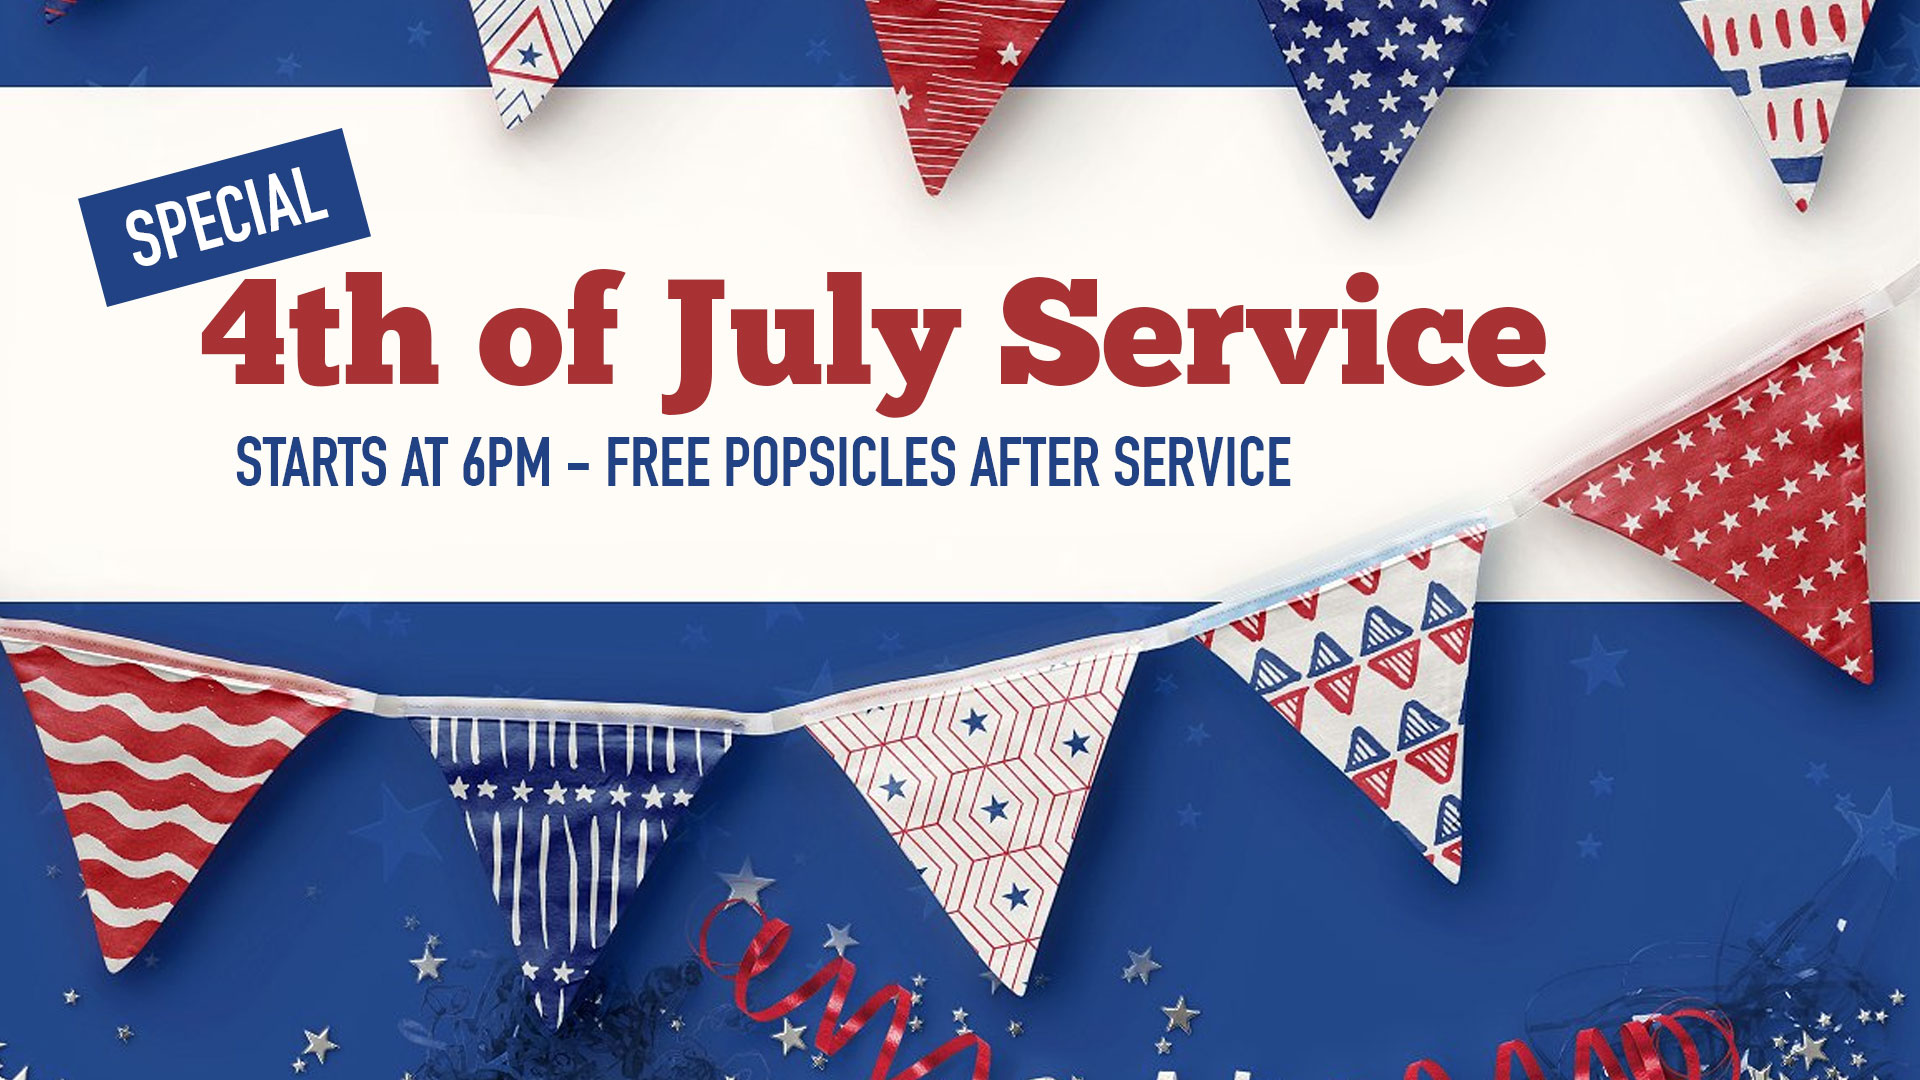 Special 4th of July Service